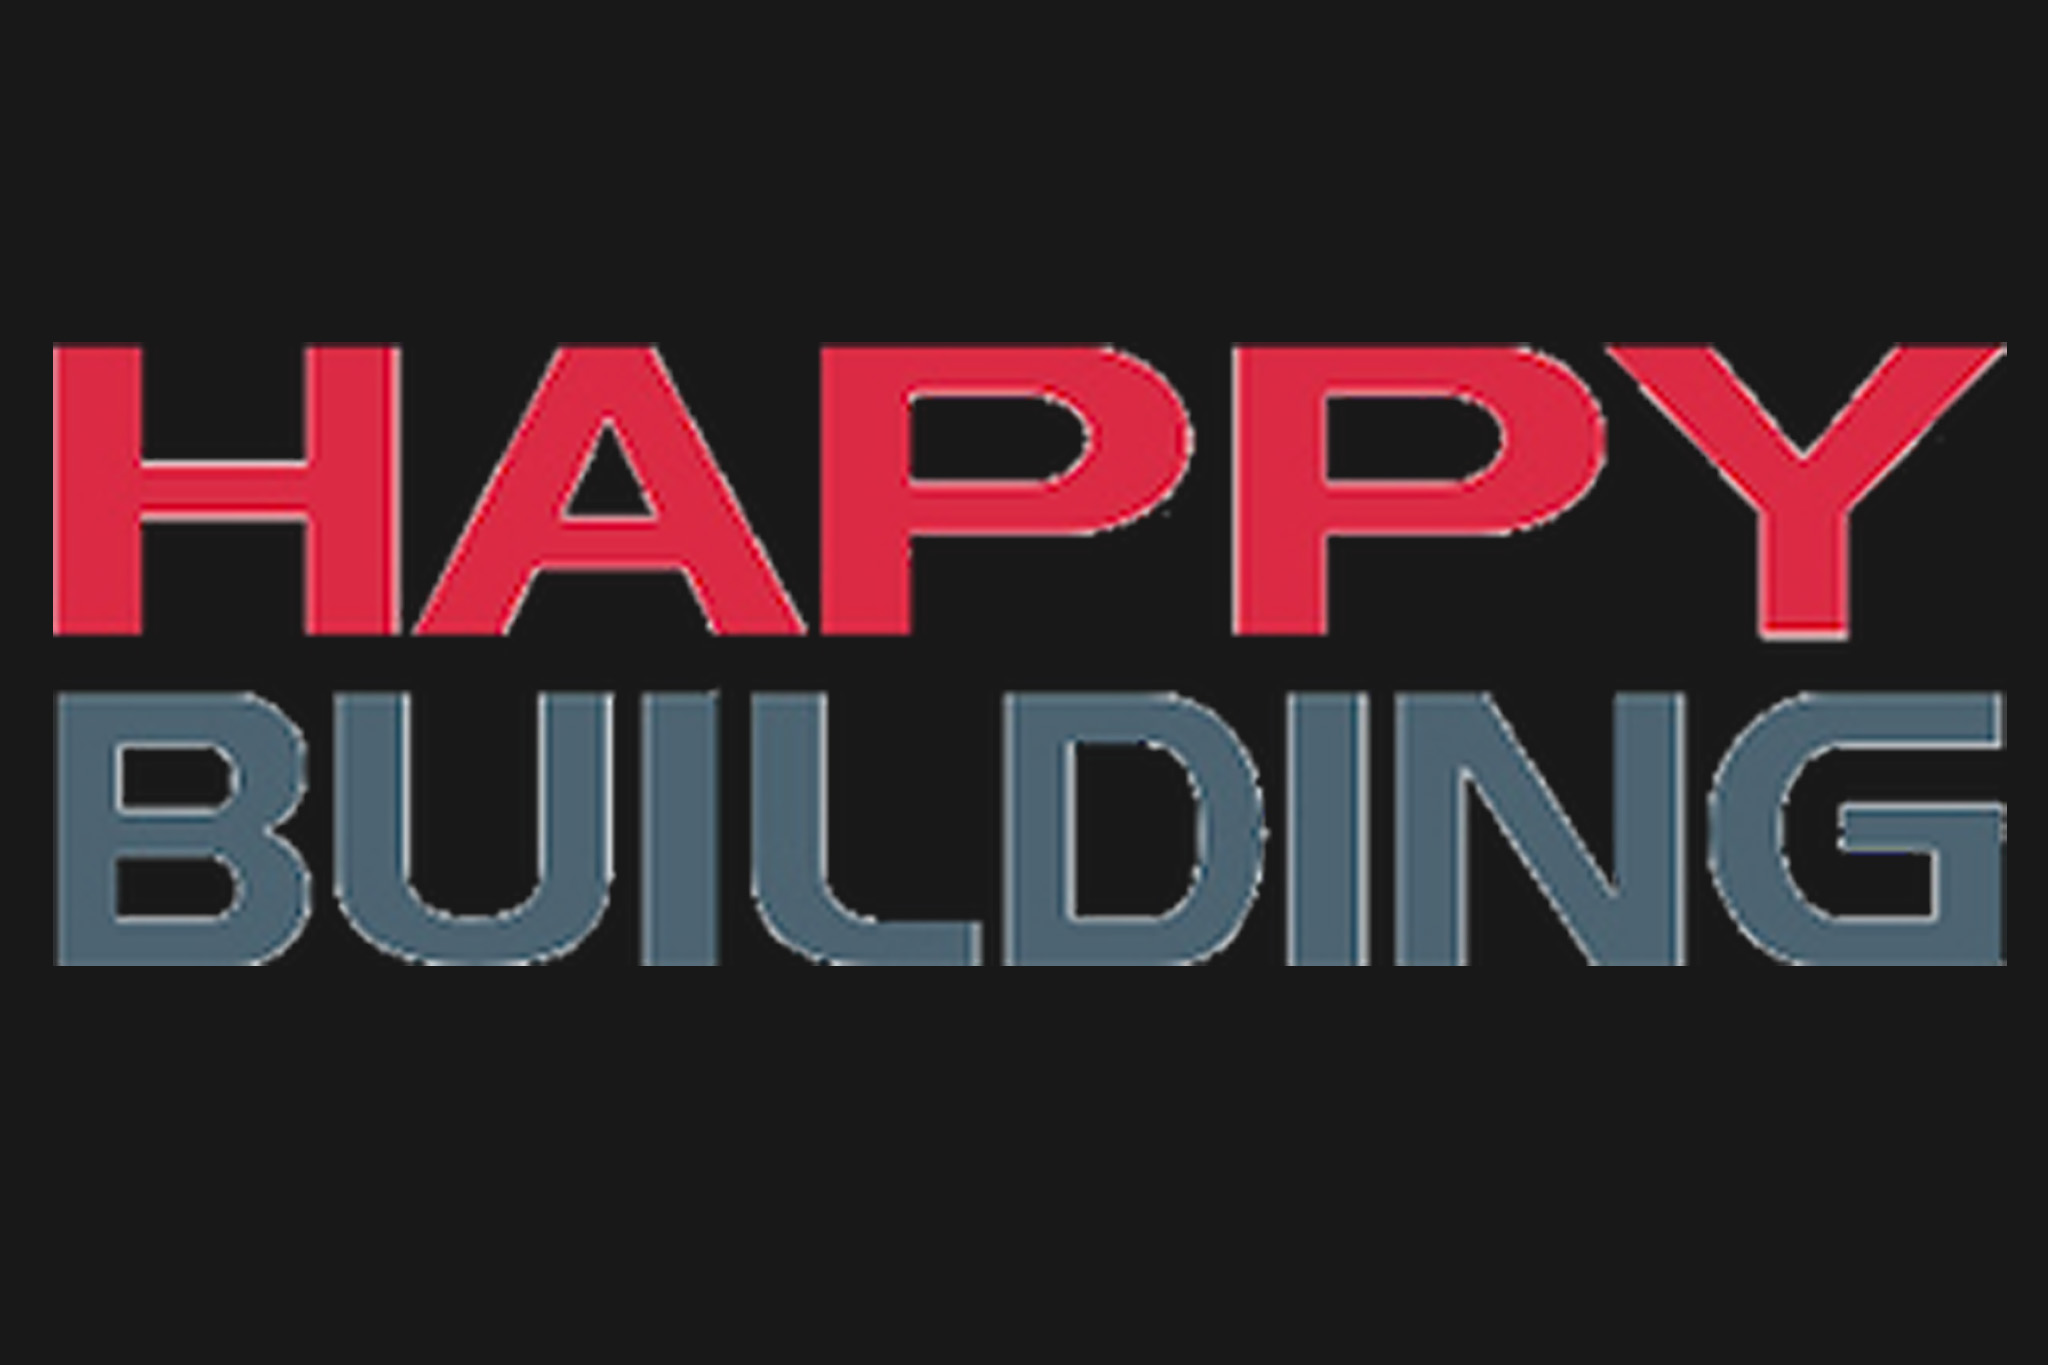 Happy Building